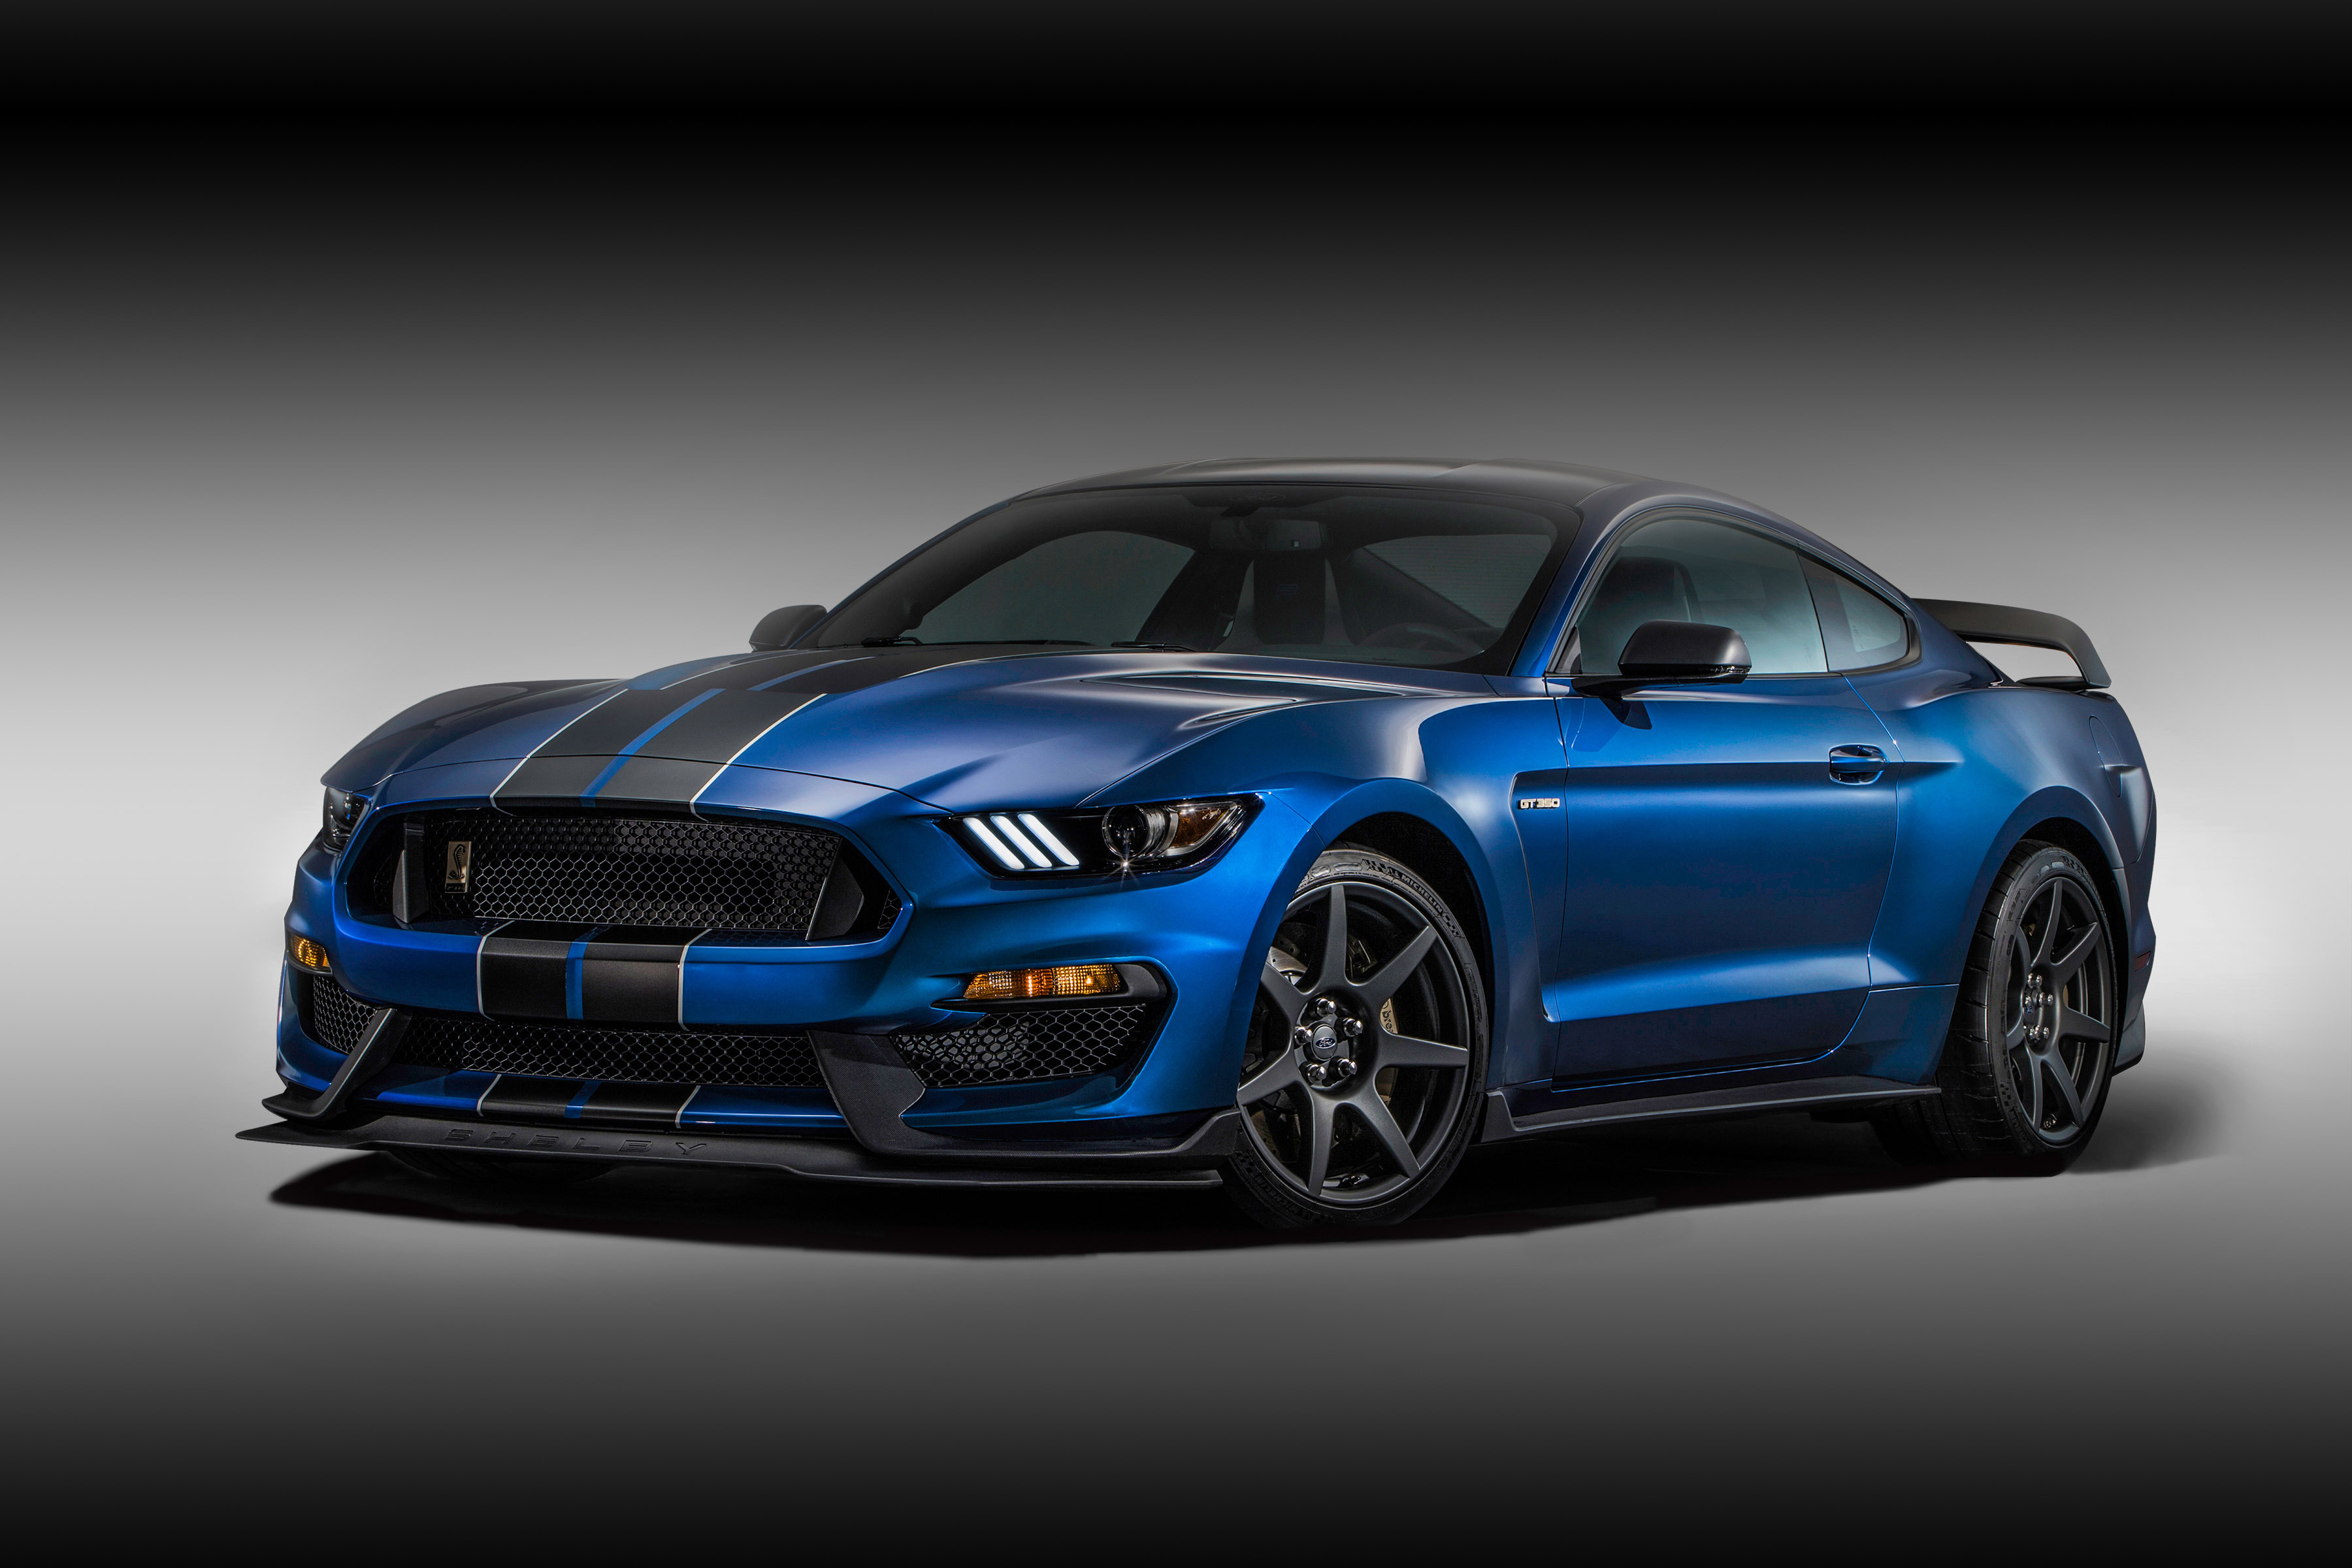 Ford Mustang Shelby Gt350r Wallpaper 47441 3600x2400 Px